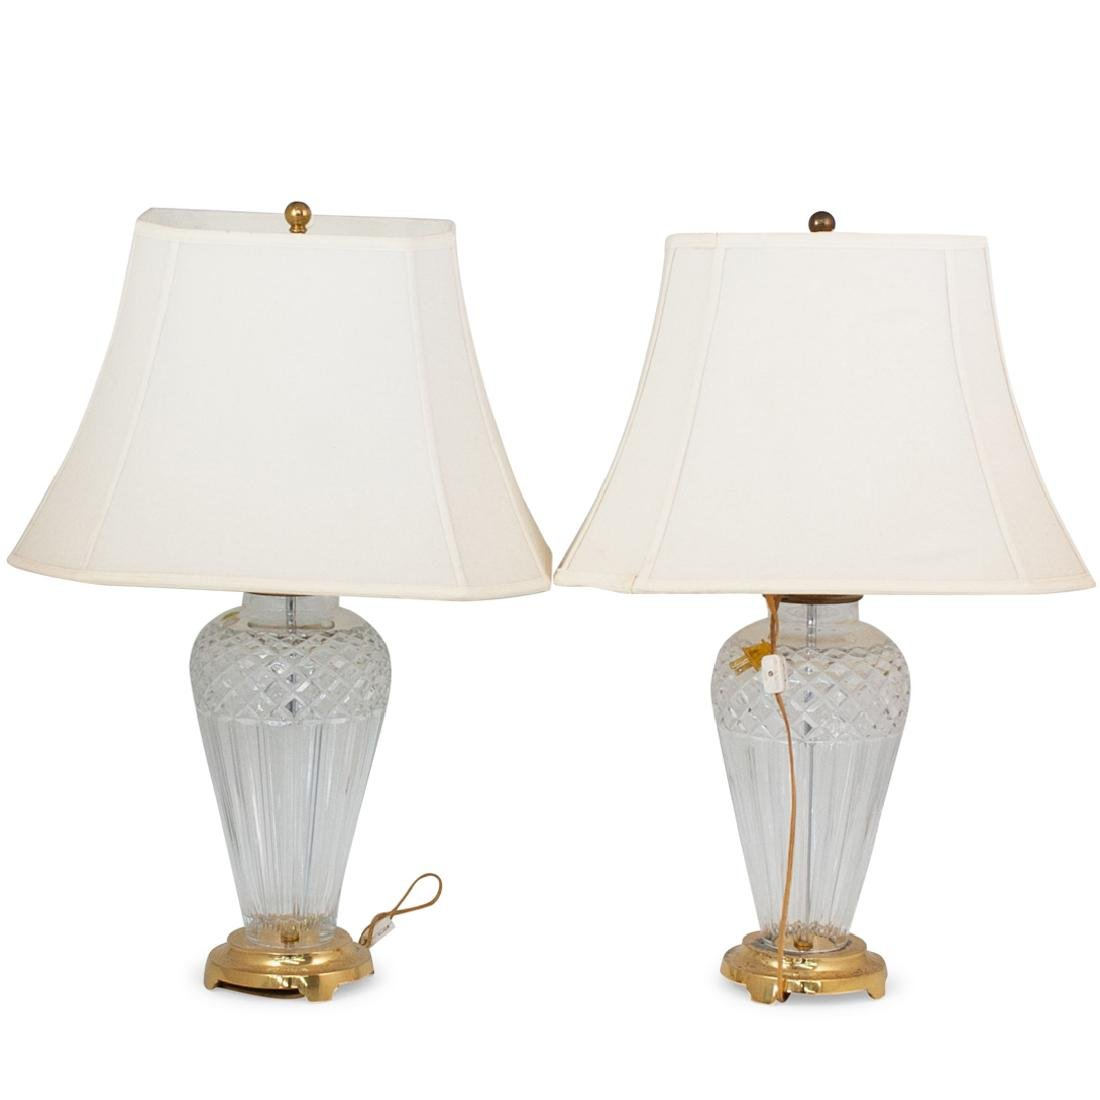 Pair of Waterford Crystal Lamps